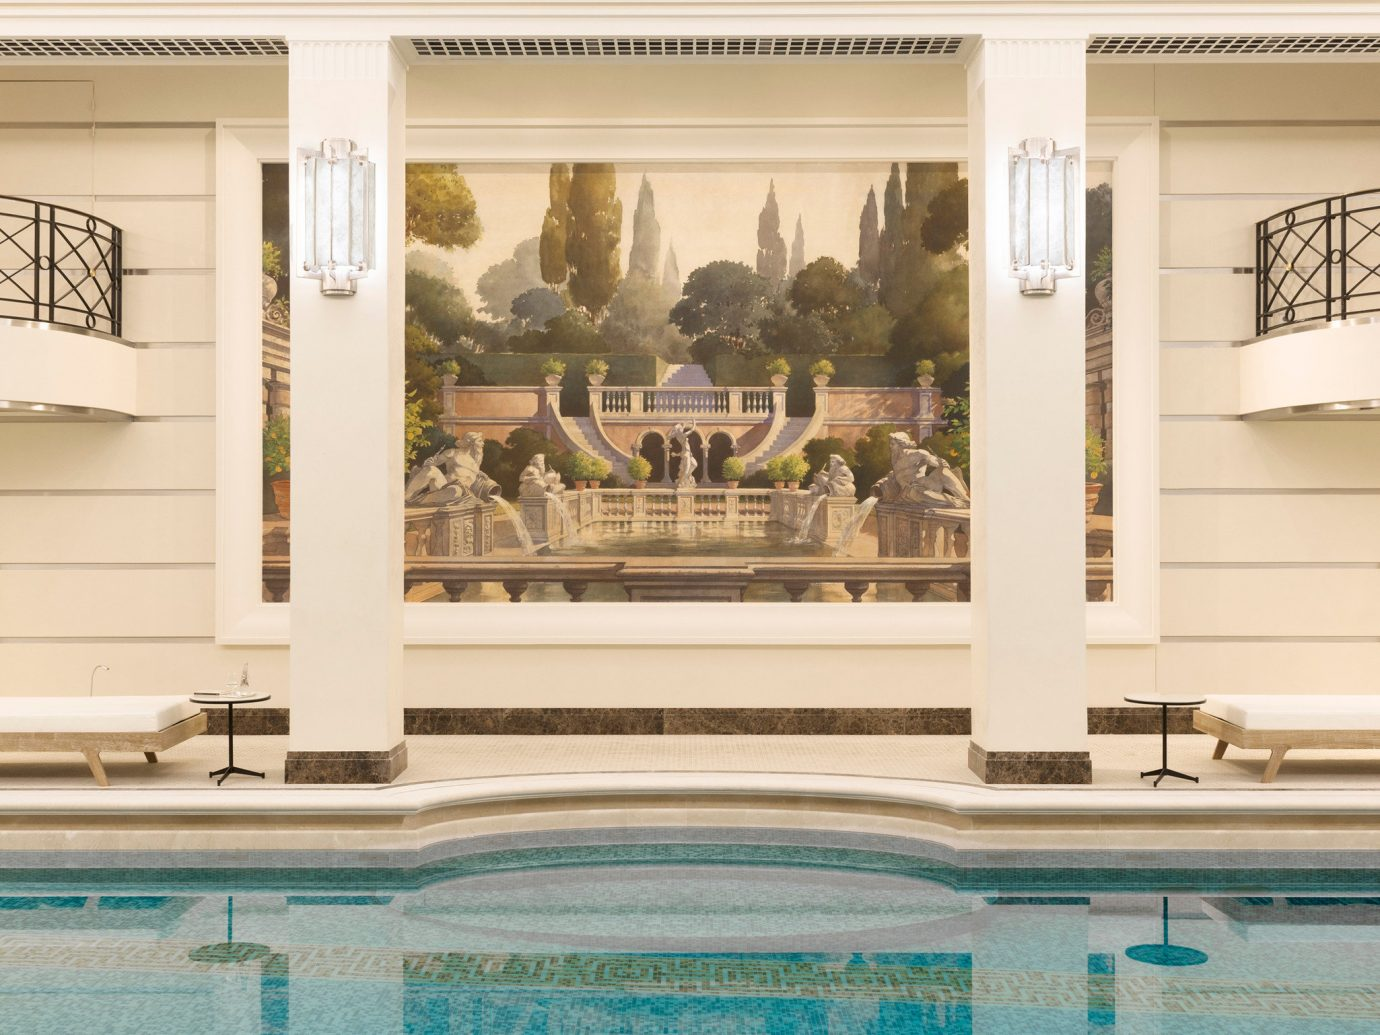 Trip Ideas swimming pool property building estate home mansion facade palace colonnade